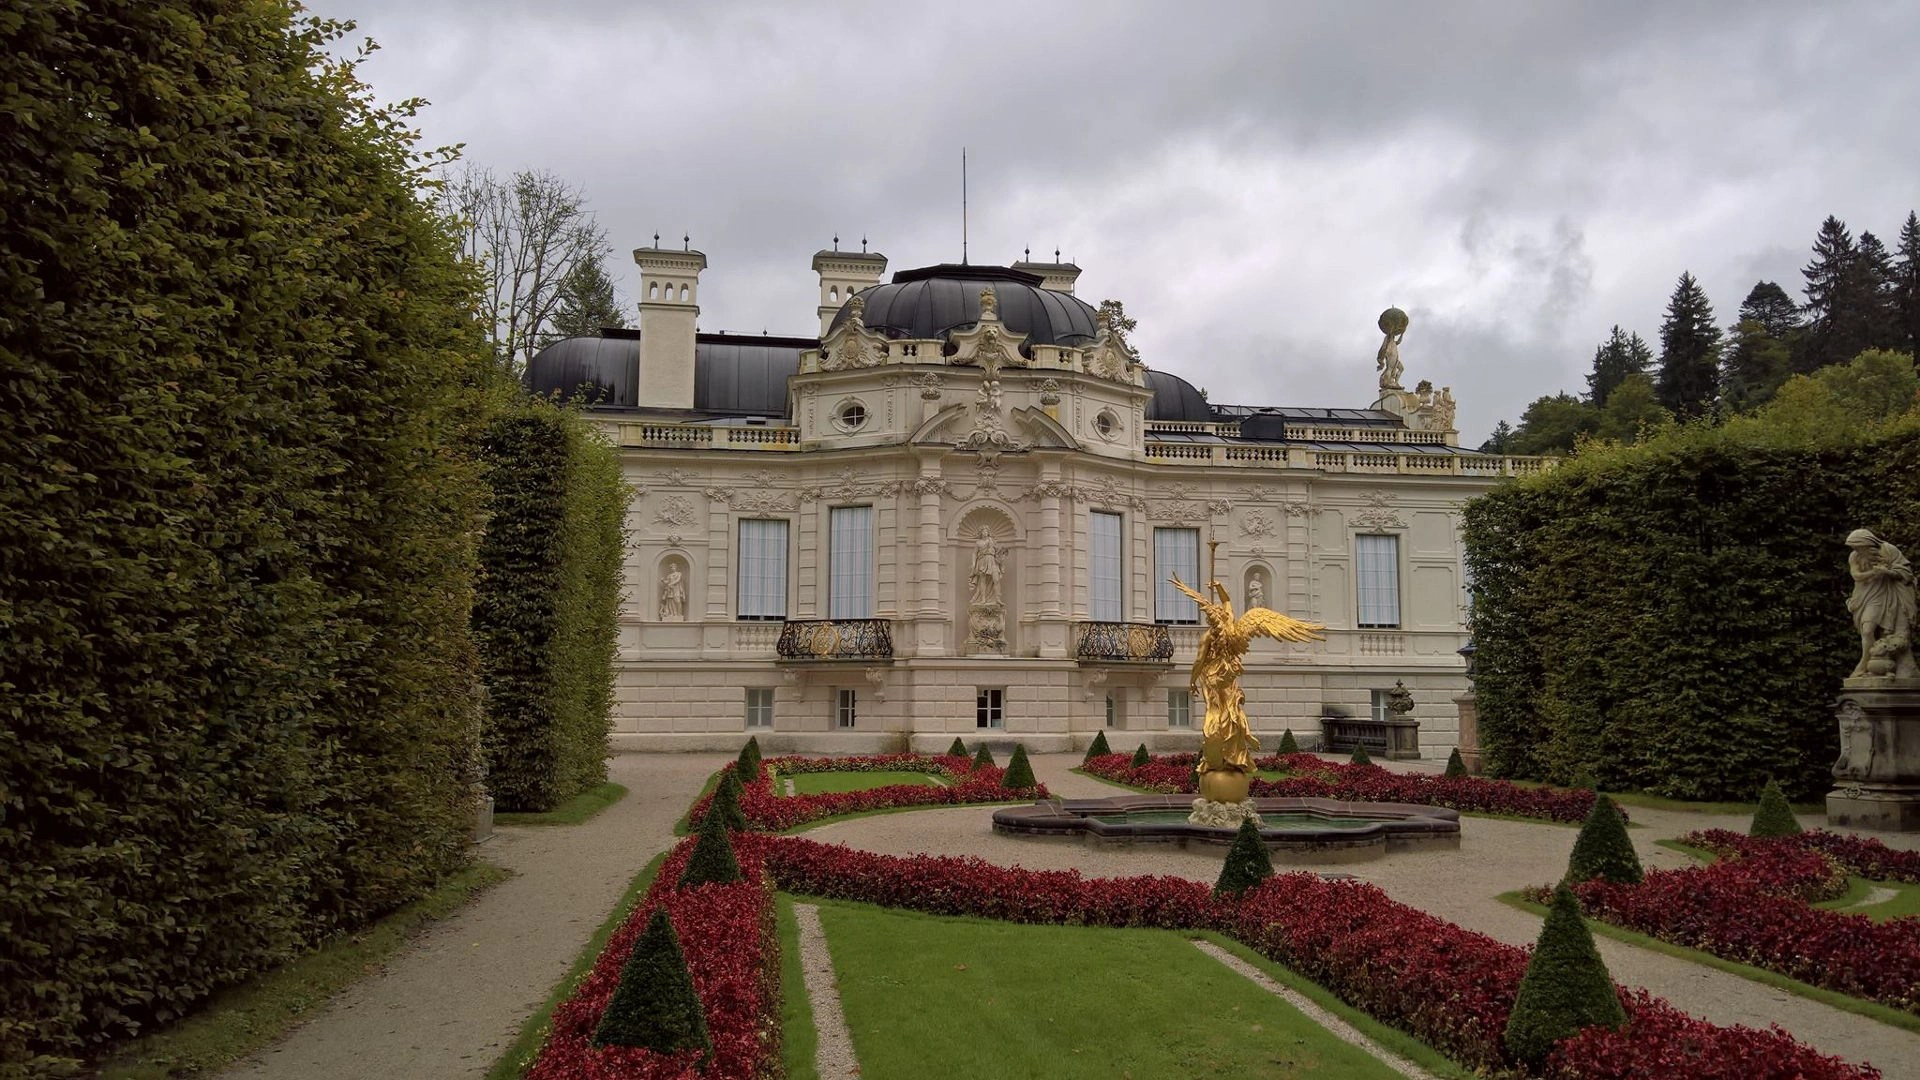 German Castles: Linderhof Castle